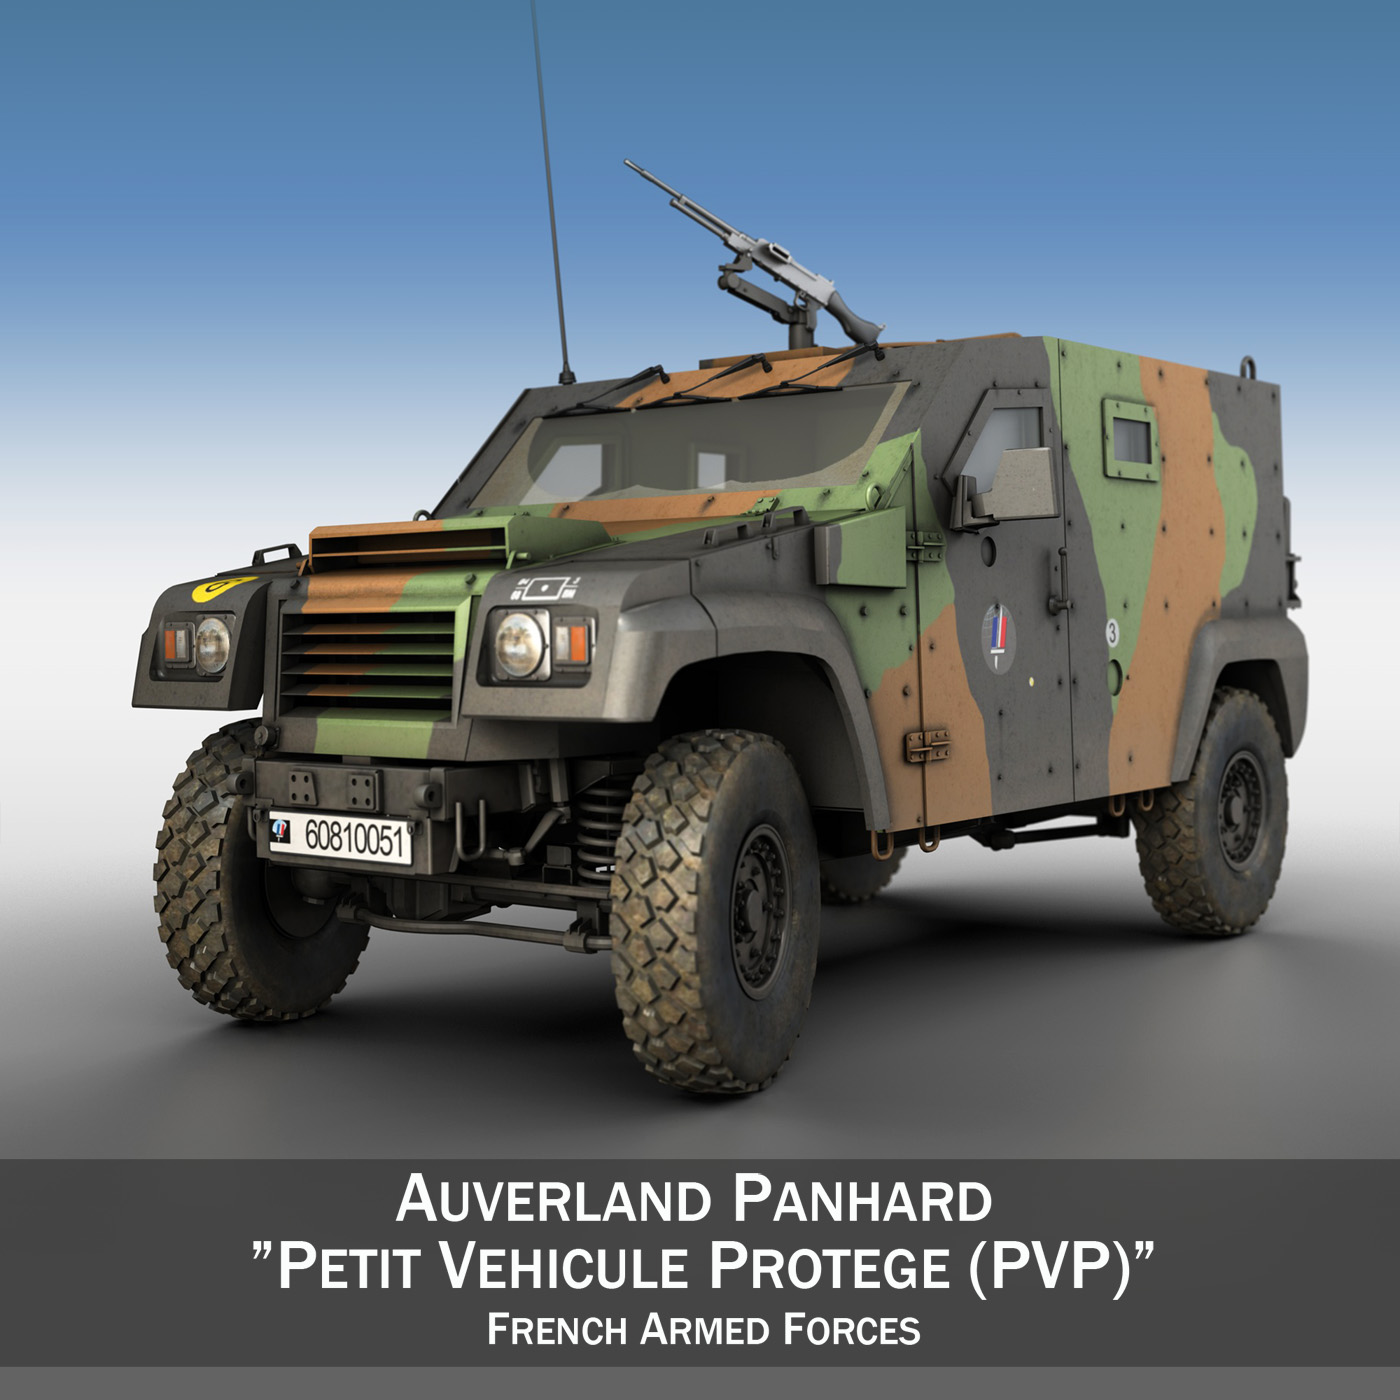 auverland panhard pvp - french army 3d model 3ds fbx c4d lwo obj 190089